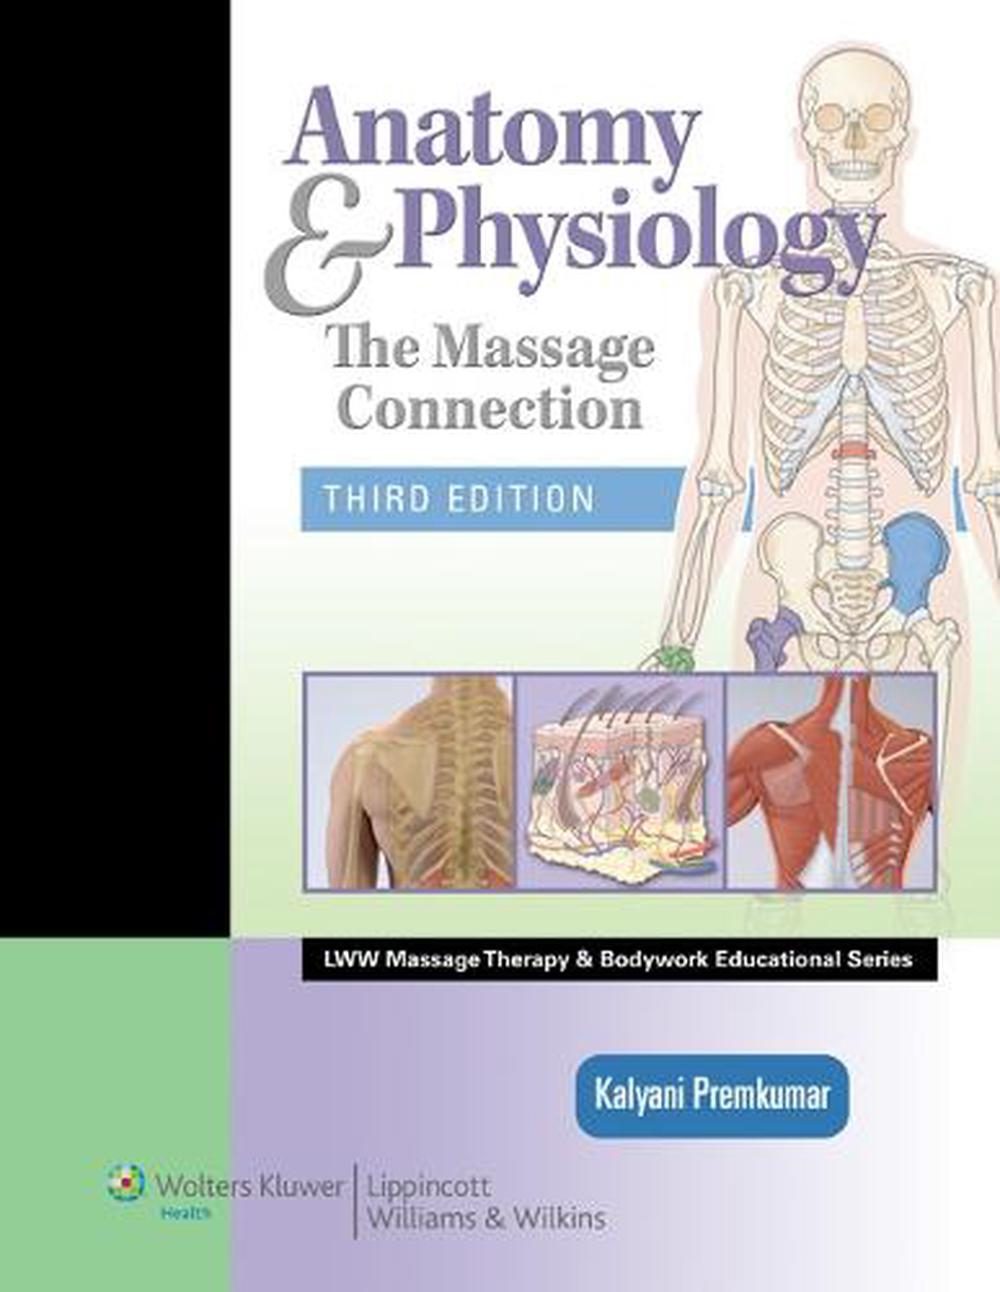 Anatomy and Physiology: The Massage Connection by Kalyani Premkumar ...